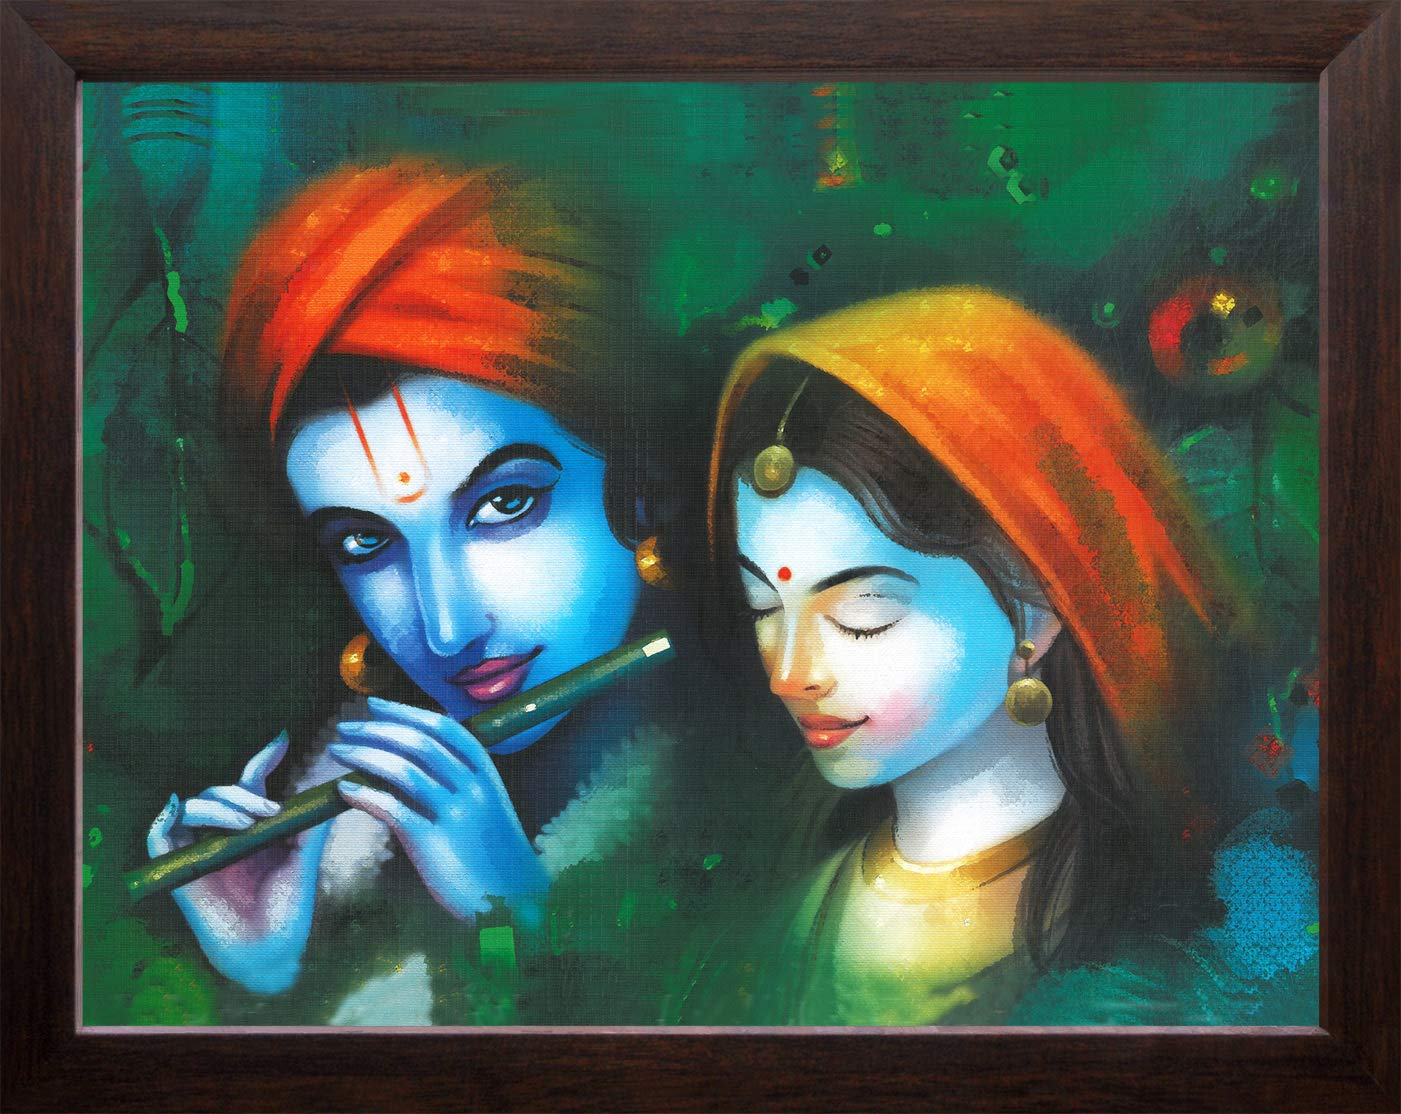 Art N Store Radha Krishna Modern Art Acrylic Sheet Painting High Contrast Hd Printed Picture Religious And Decor With Plane Wood Frame 30 X 23 5 X 1 5 Cm Brown Amazon In Home Kitchen